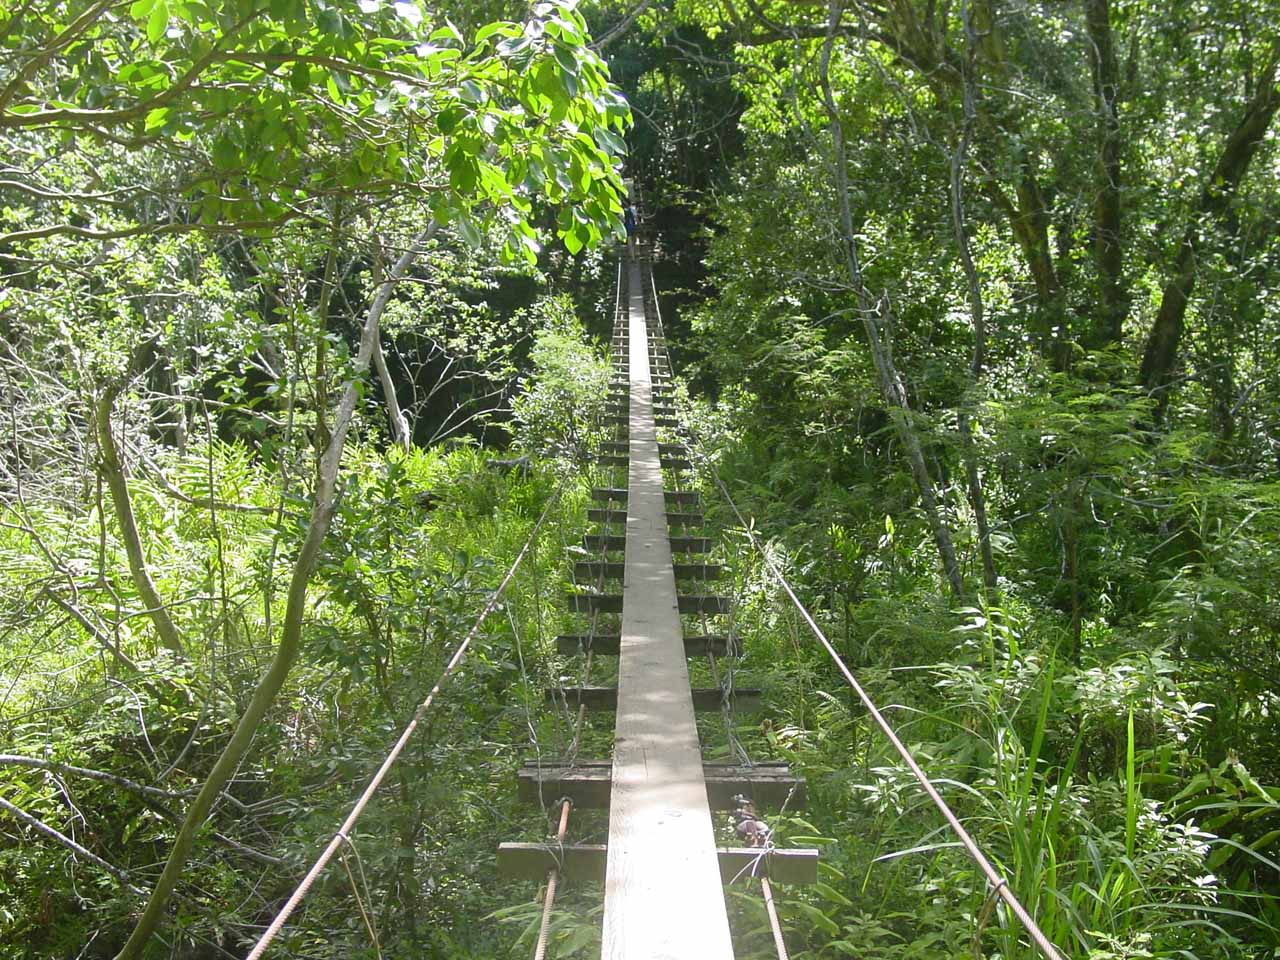 The 2nd Swinging Bridge